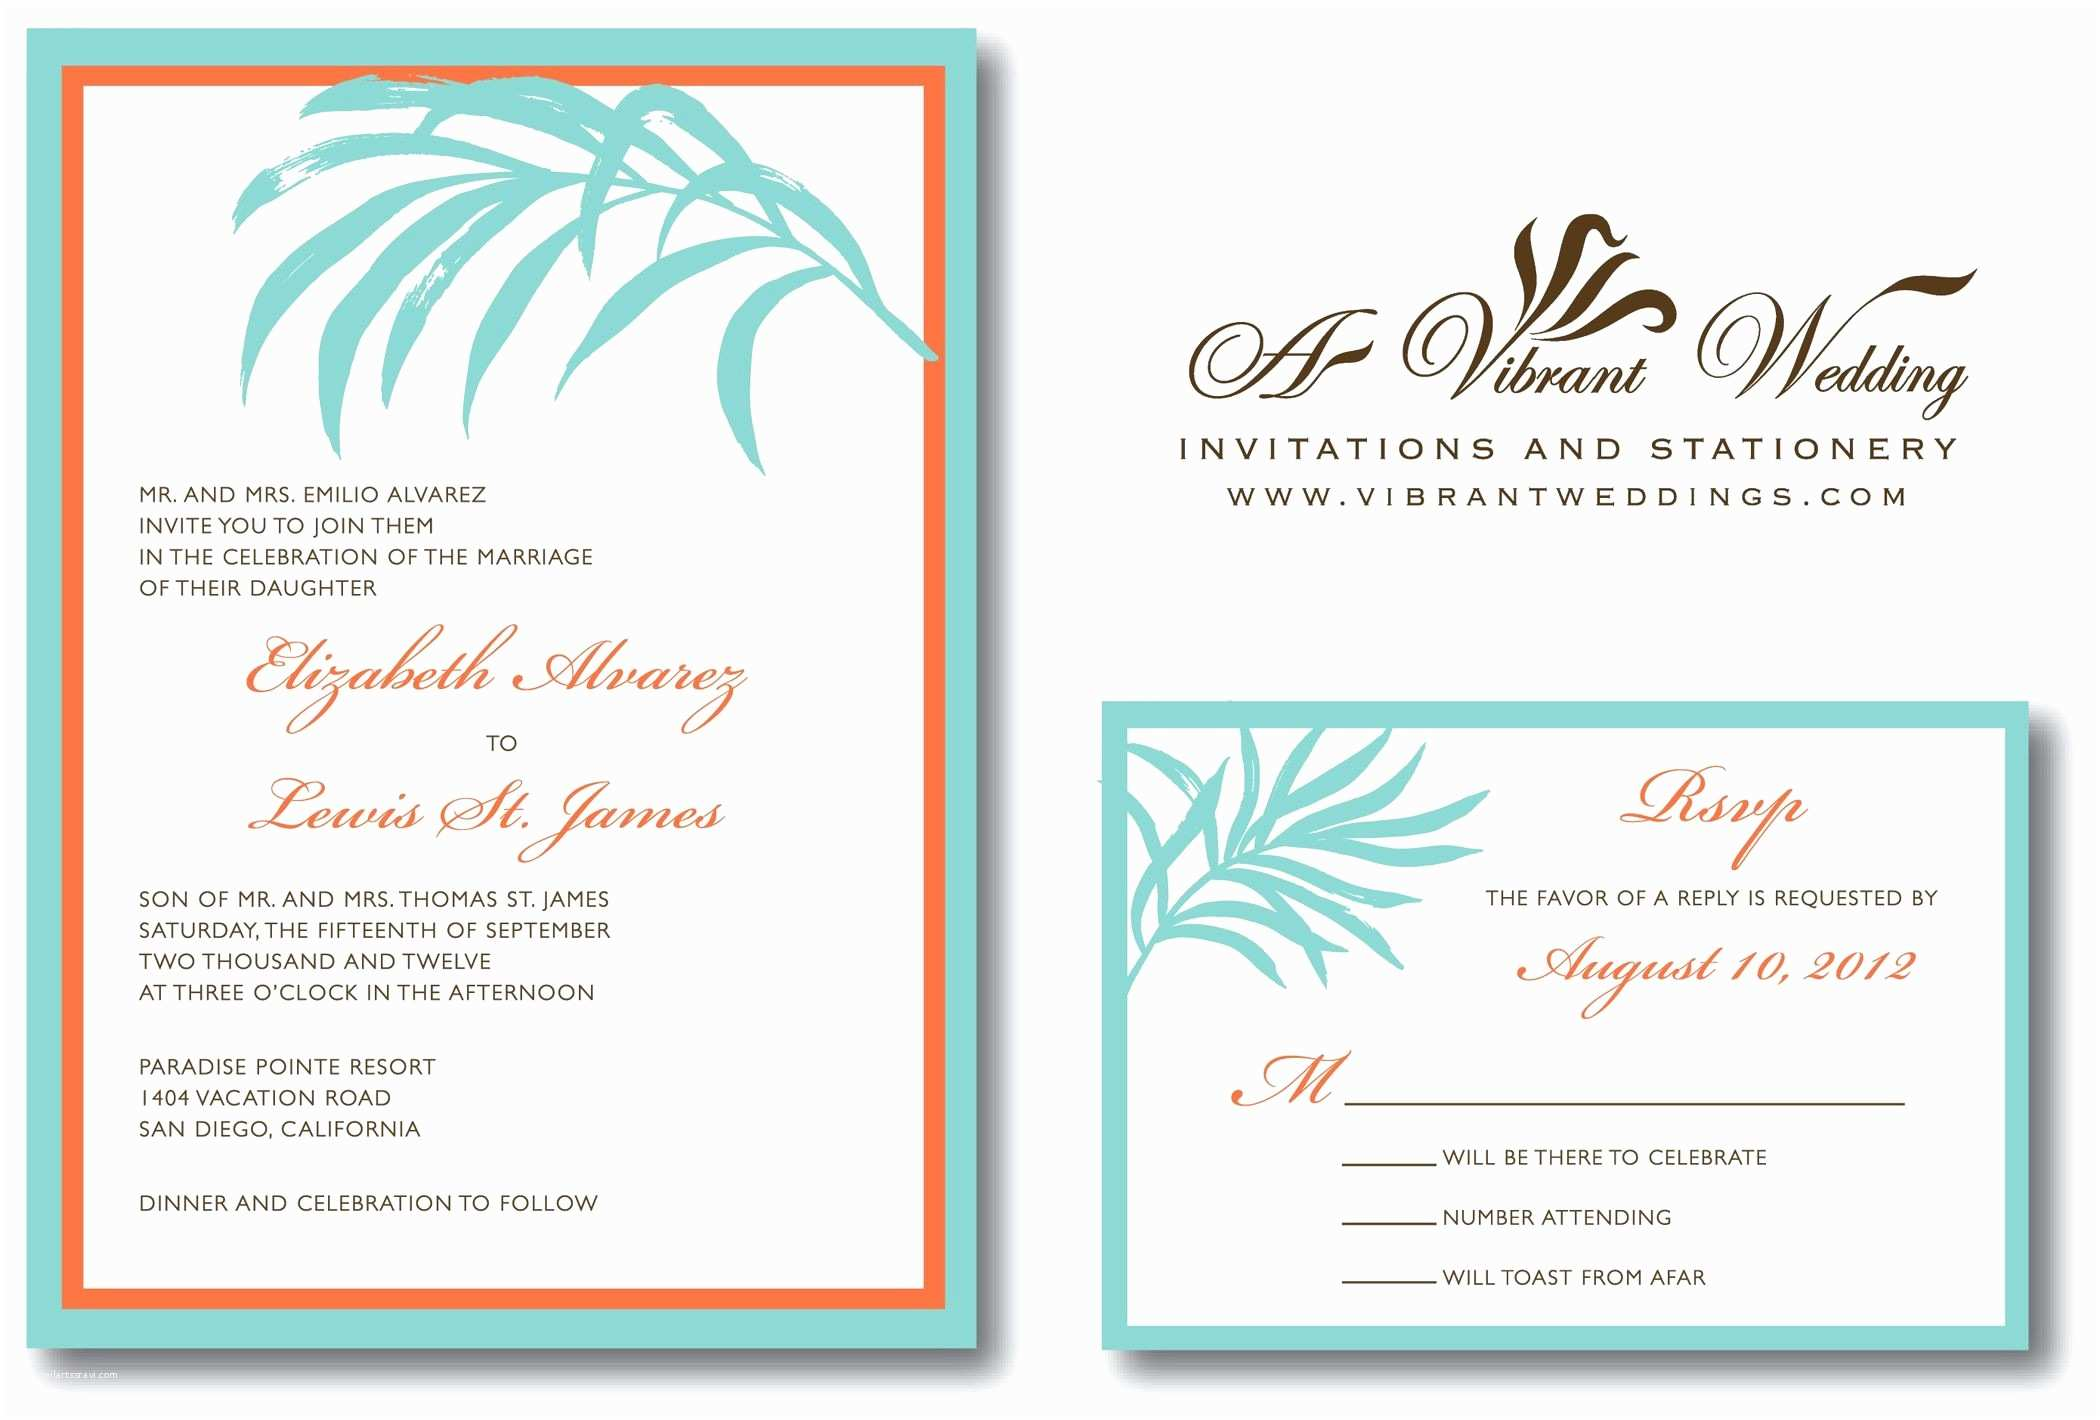 Formal Beach Wedding Invitations Wording for formal Wedding Invitations Image Collections